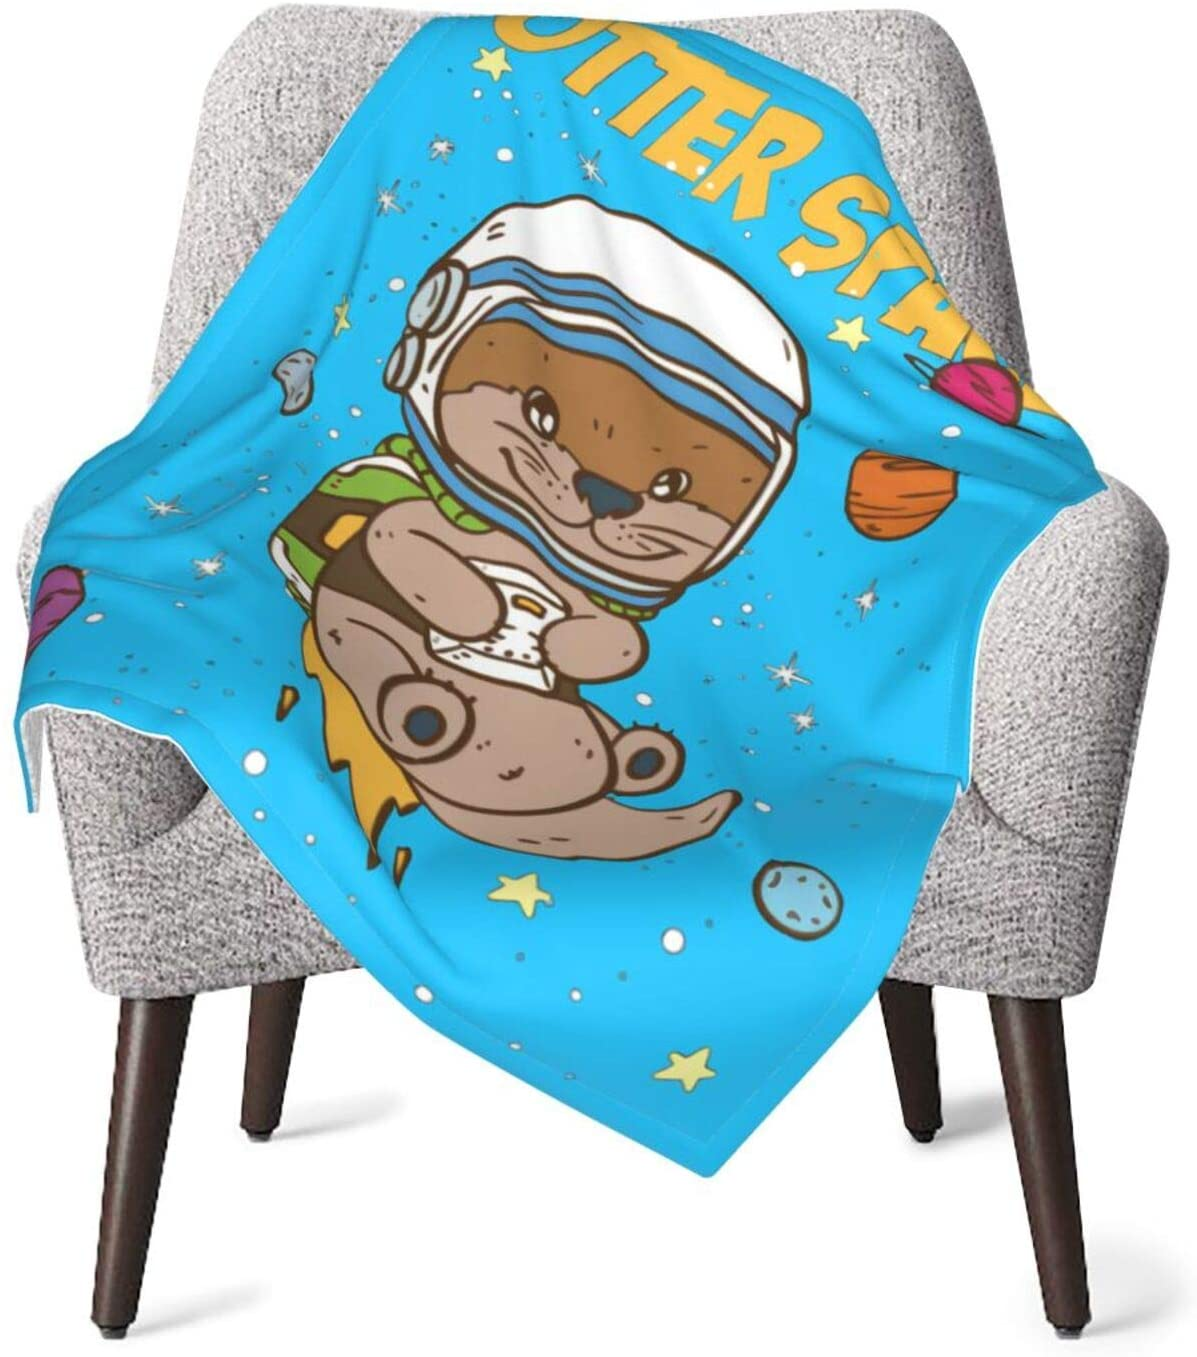 Otter Space Baby Fluffy Blanket Double Layer White Backing Bubble Guppies Blankets for Newborn Girls, Boys